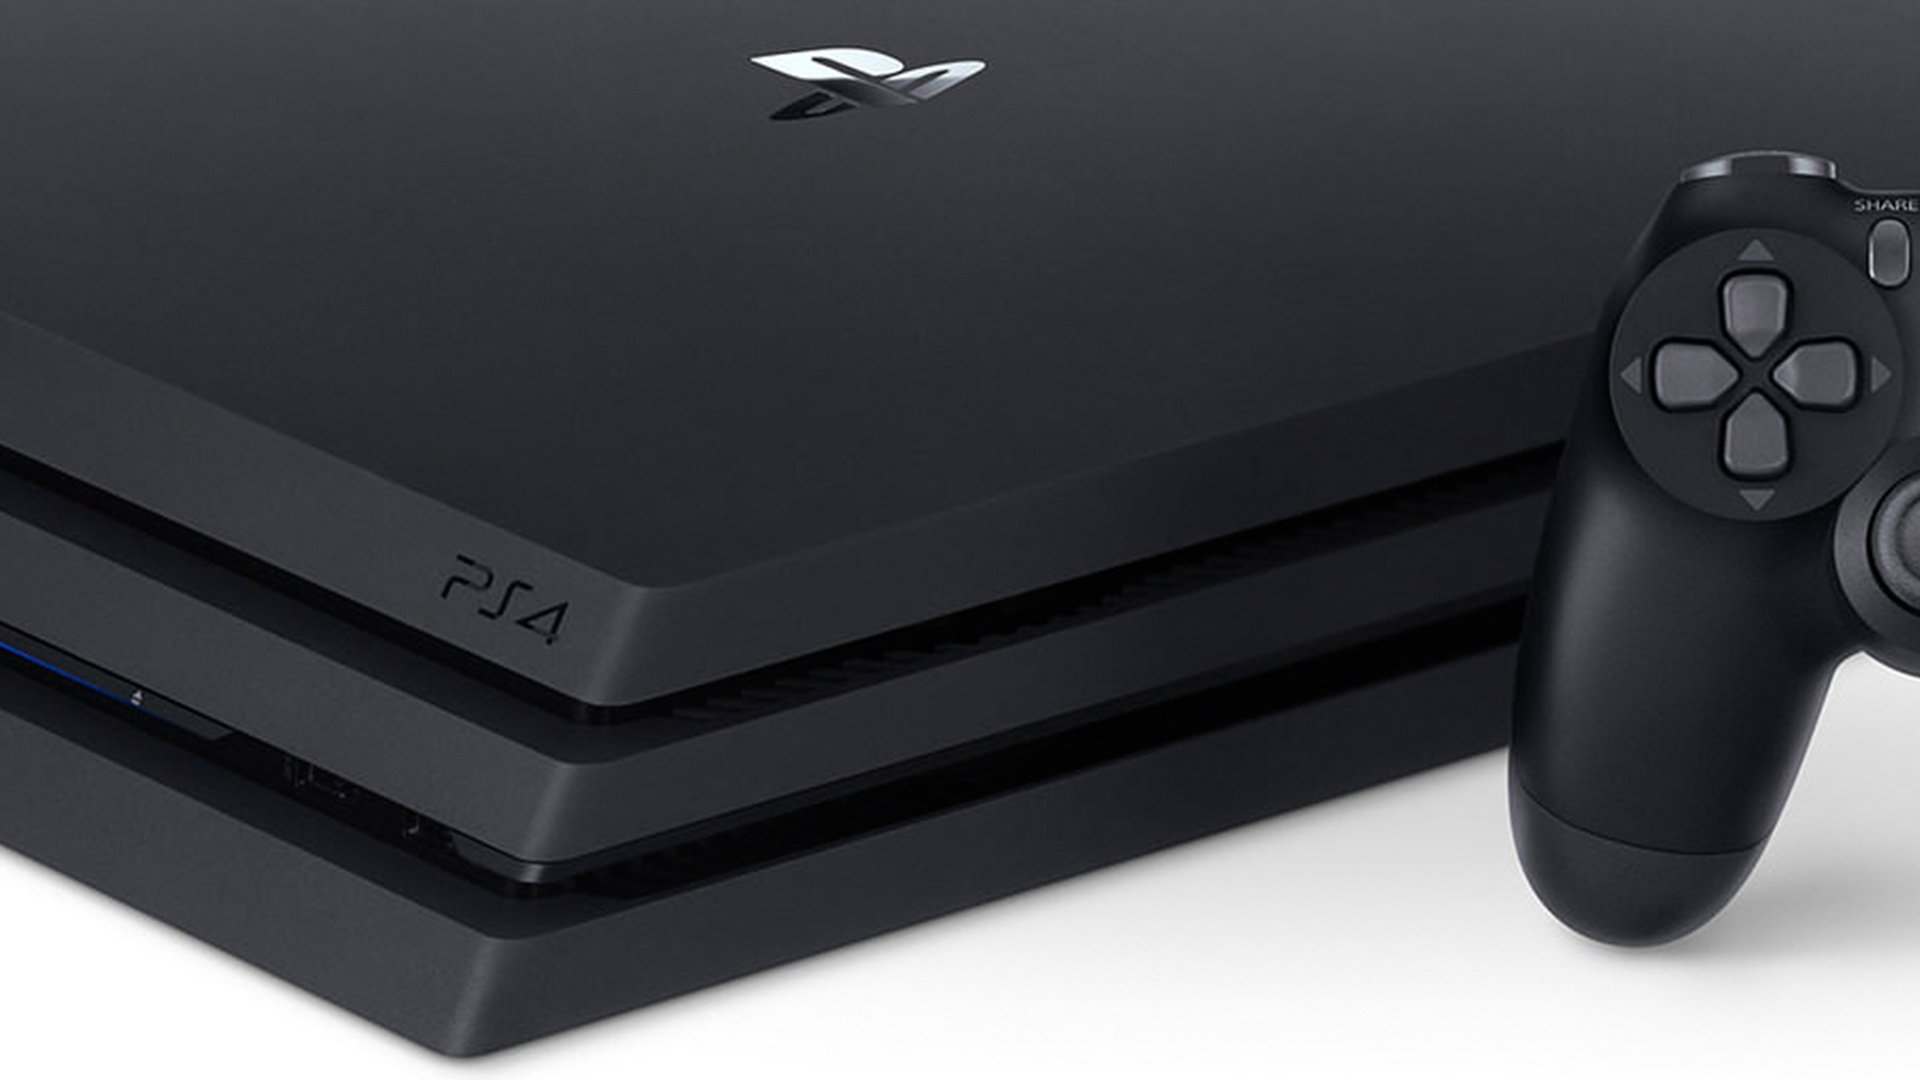 PS4 Firmware Update 6.71 Is Ready to Download Now